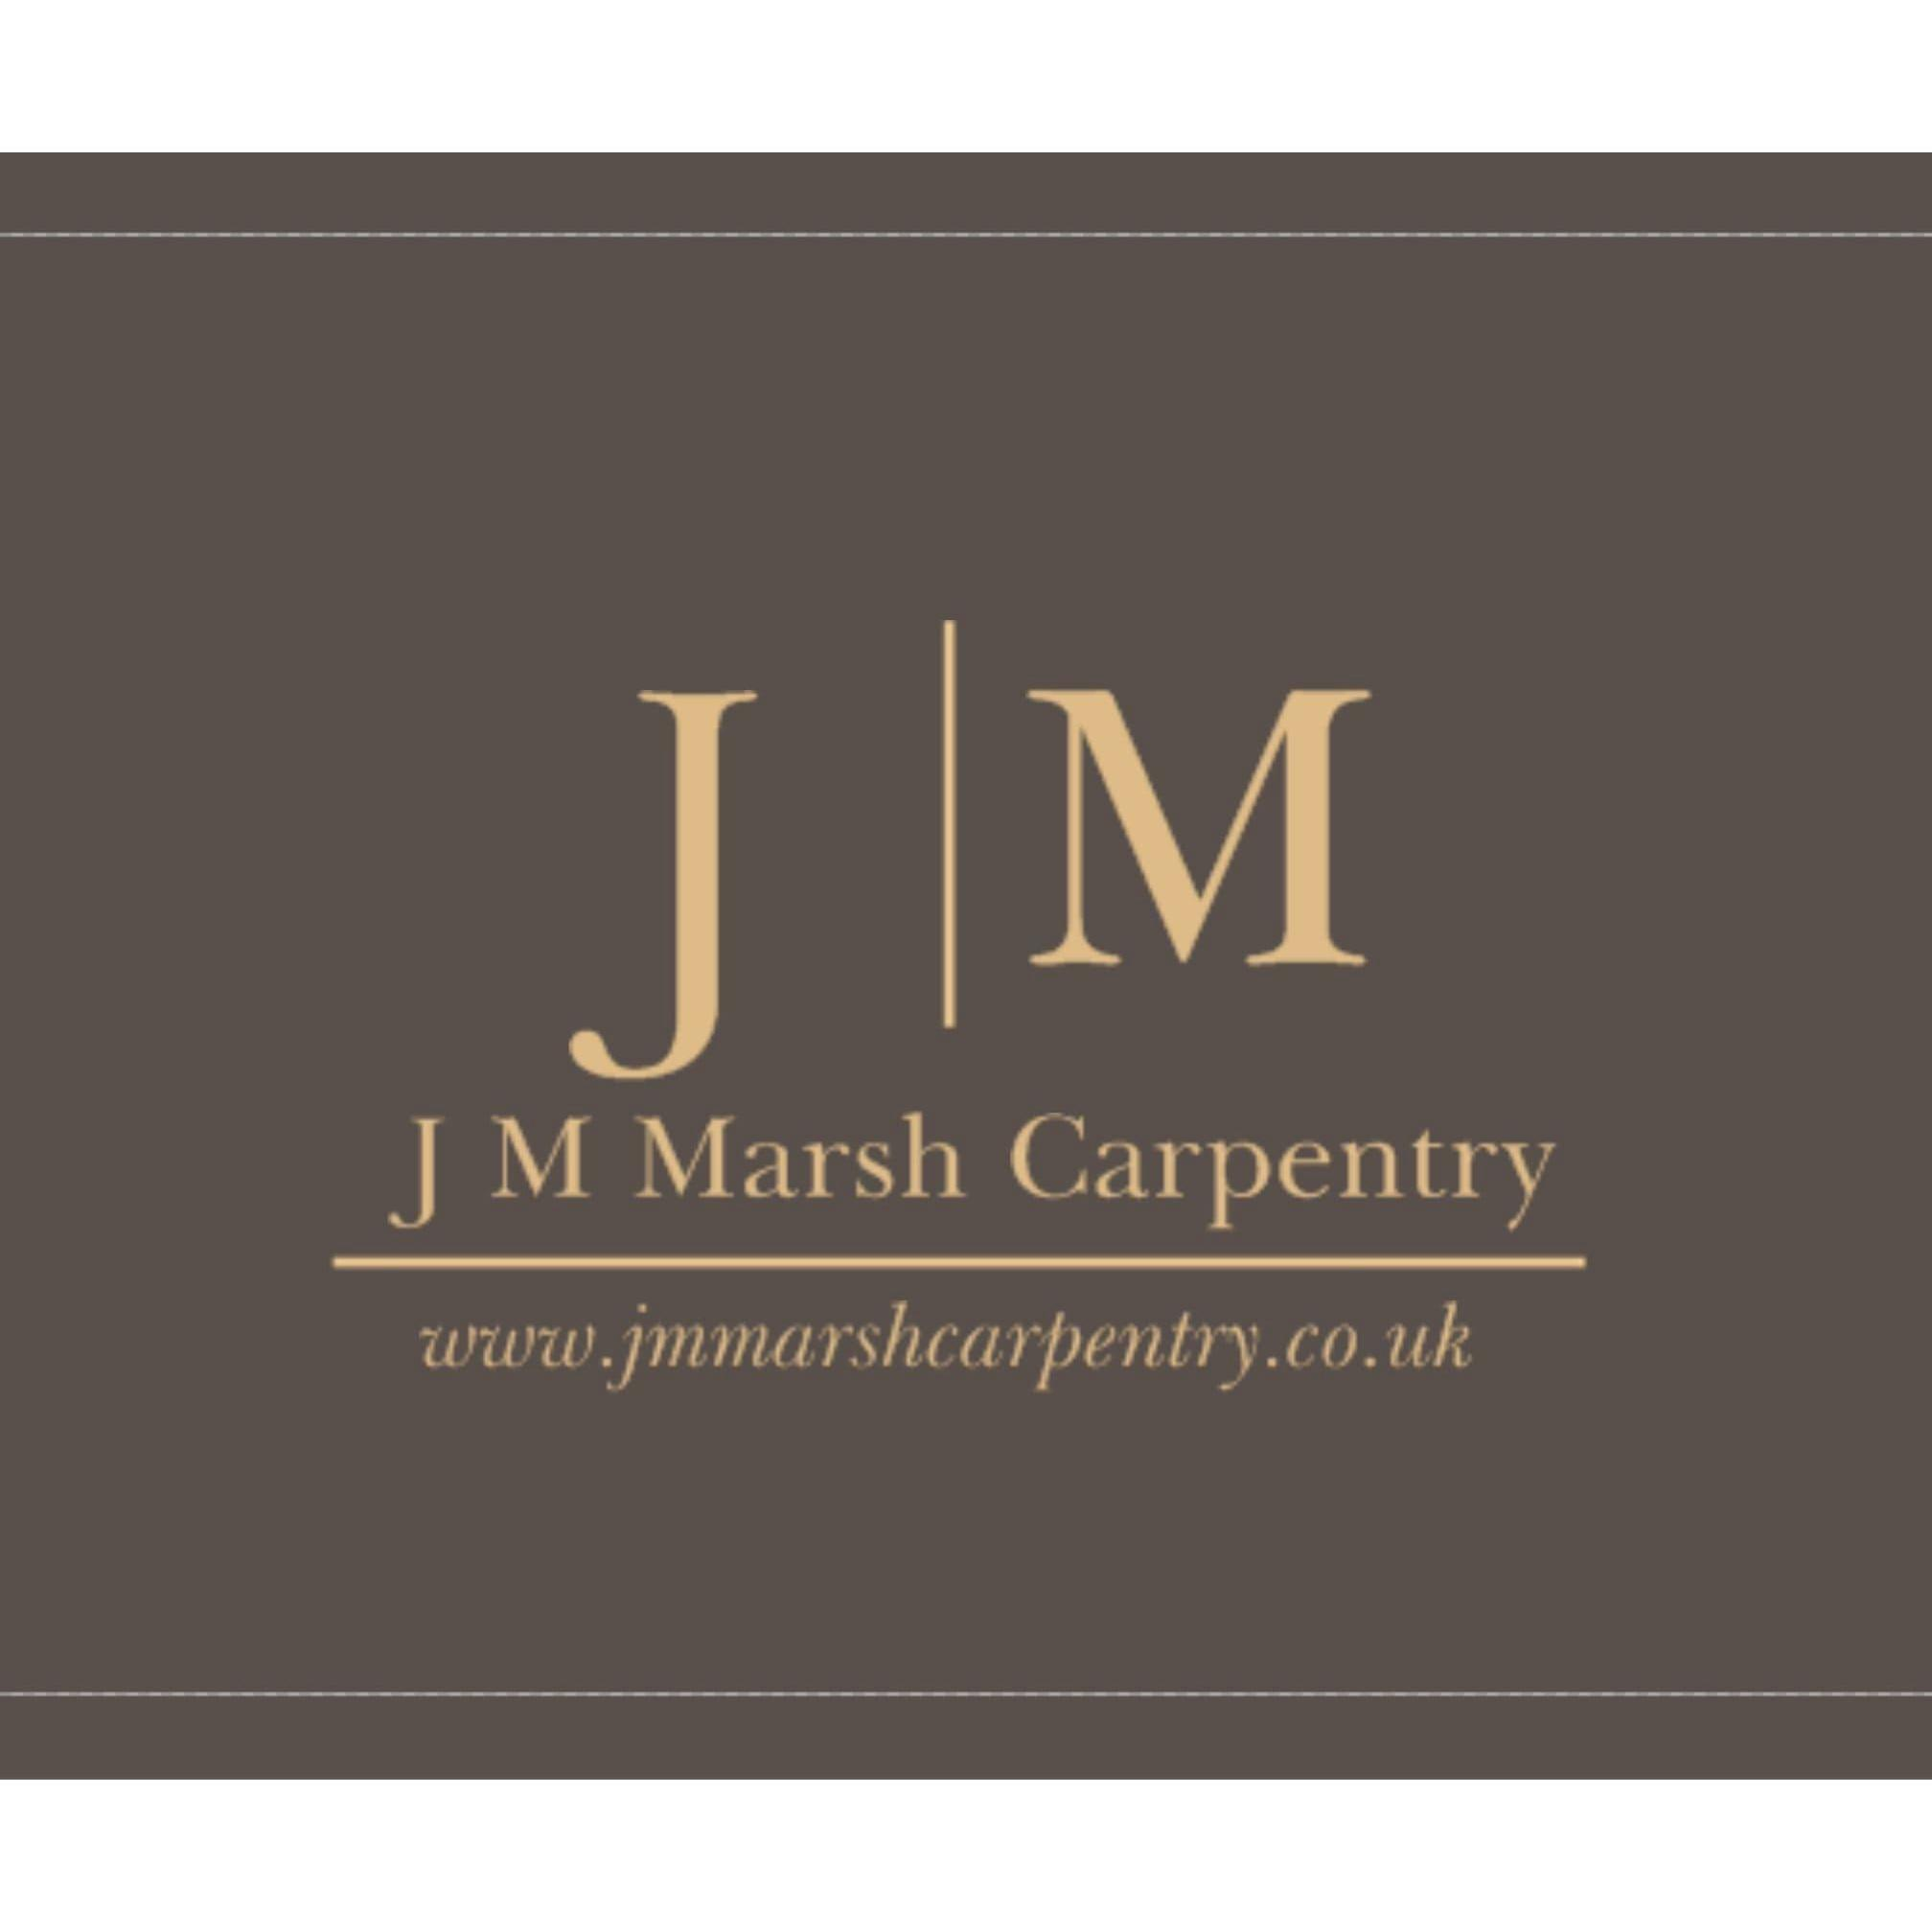 J M Marsh Carpentry - Cambridge, Cambridgeshire CB1 2QX - 07495 768242 | ShowMeLocal.com